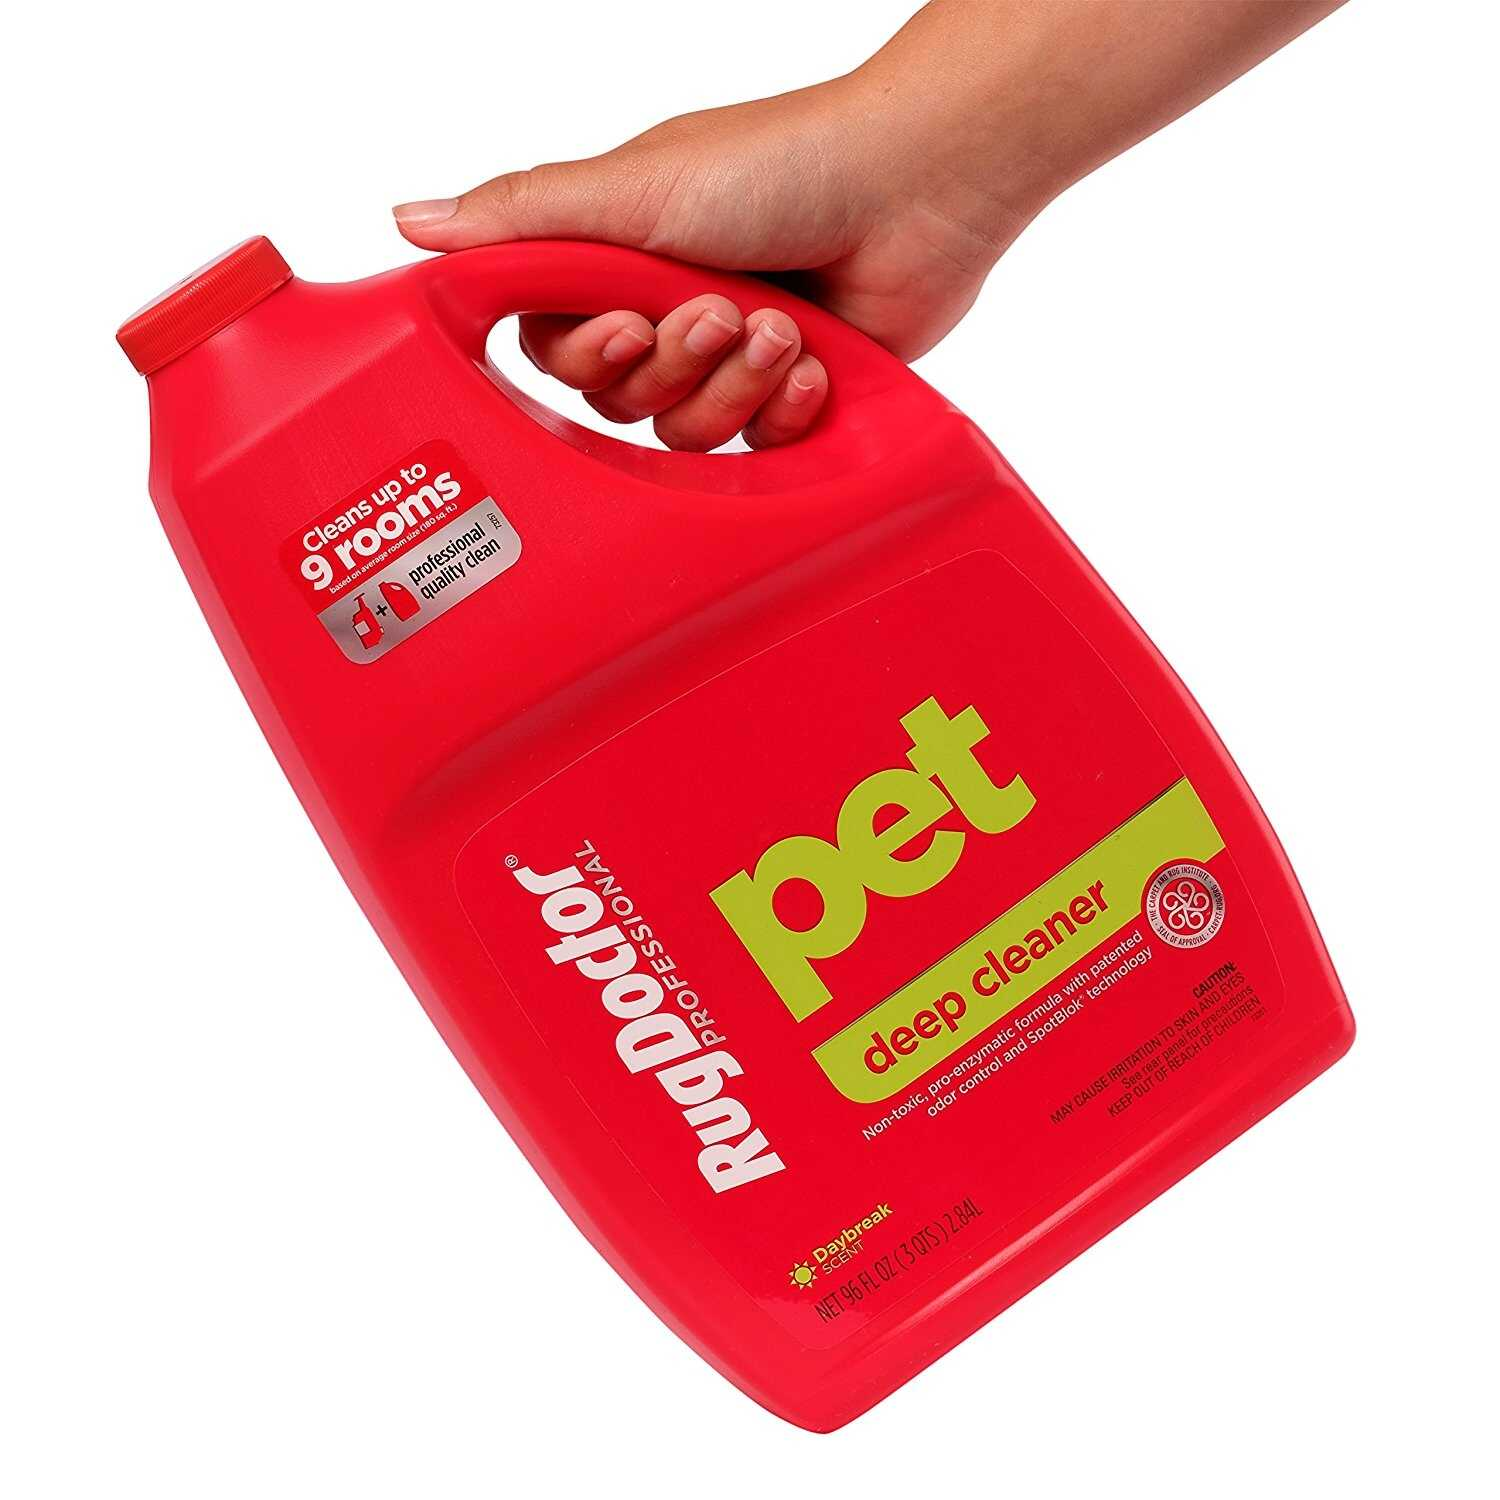 Rug Doctor  Pet Deep  Daybreak Scent Carpet Cleaner  96 oz. Liquid  Concentrated